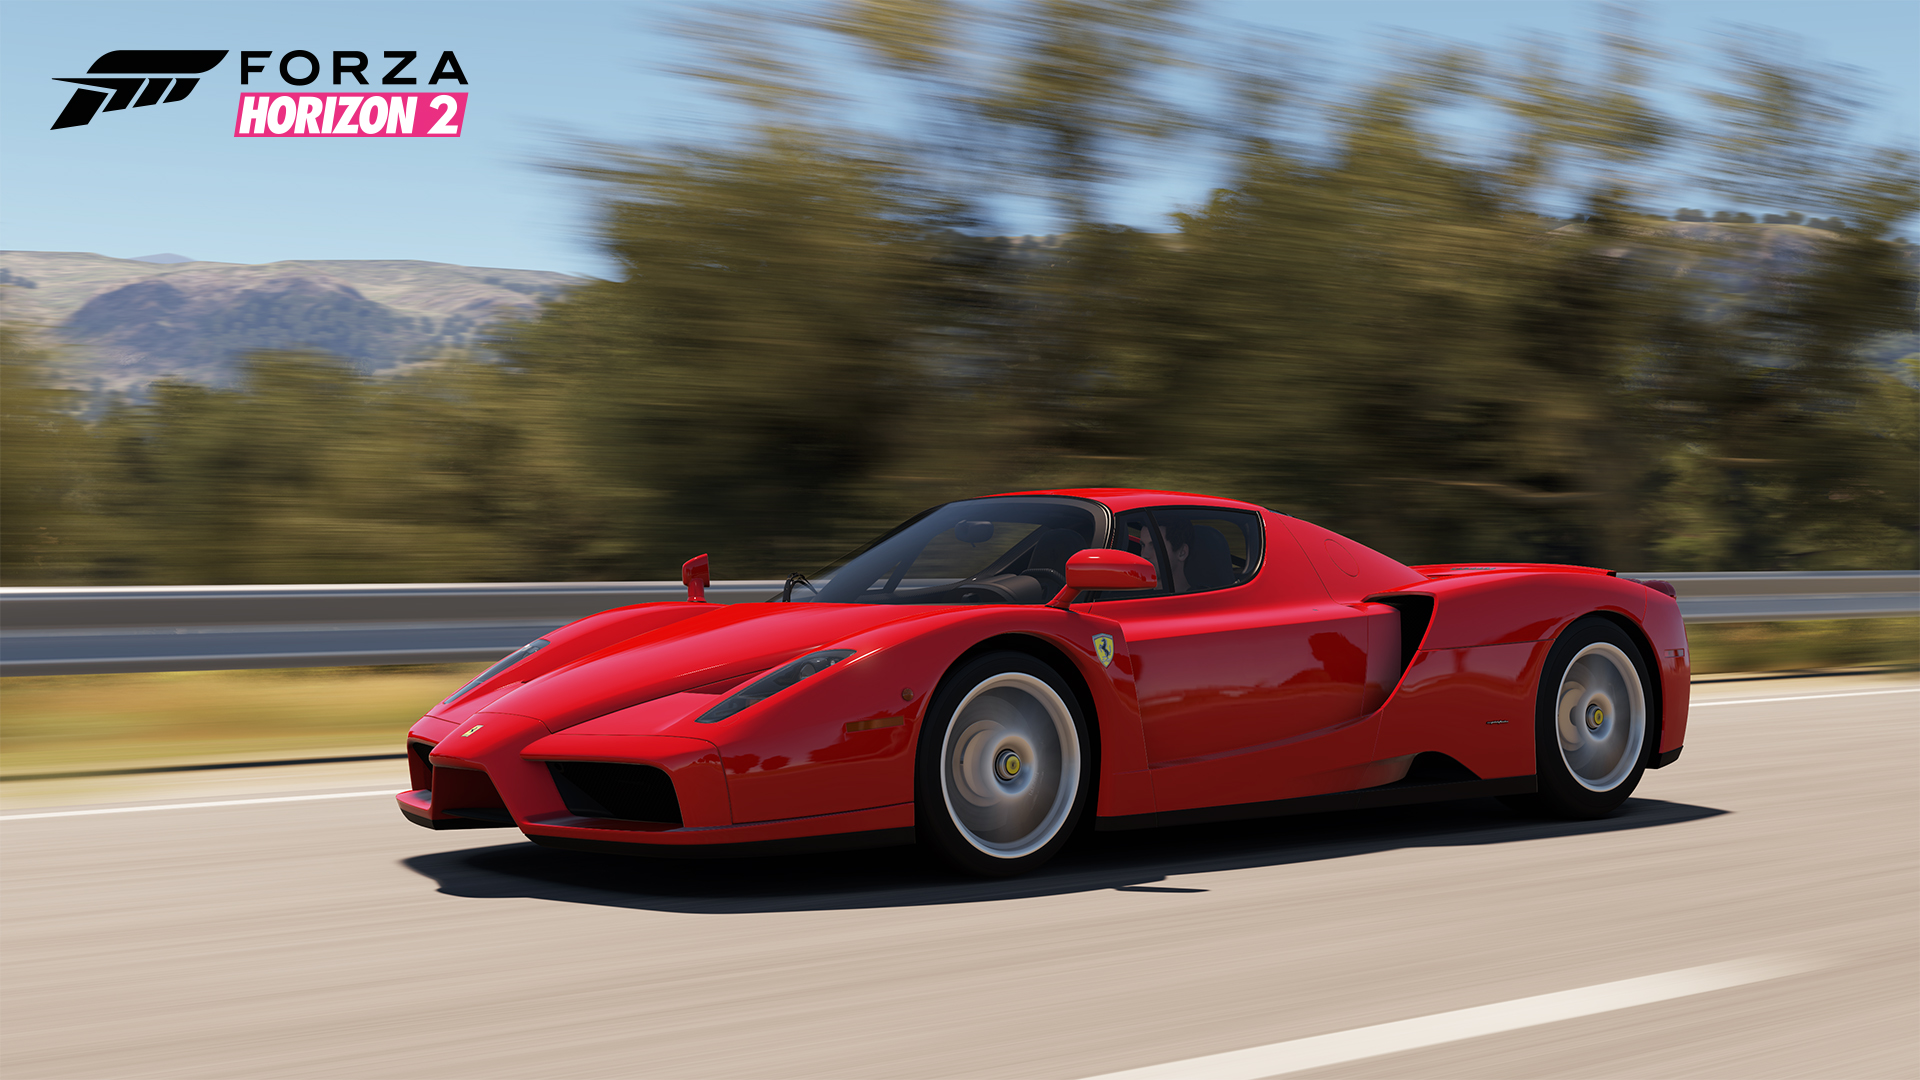 16 More Cars Announced For Forza Horizon 2 Egmnow